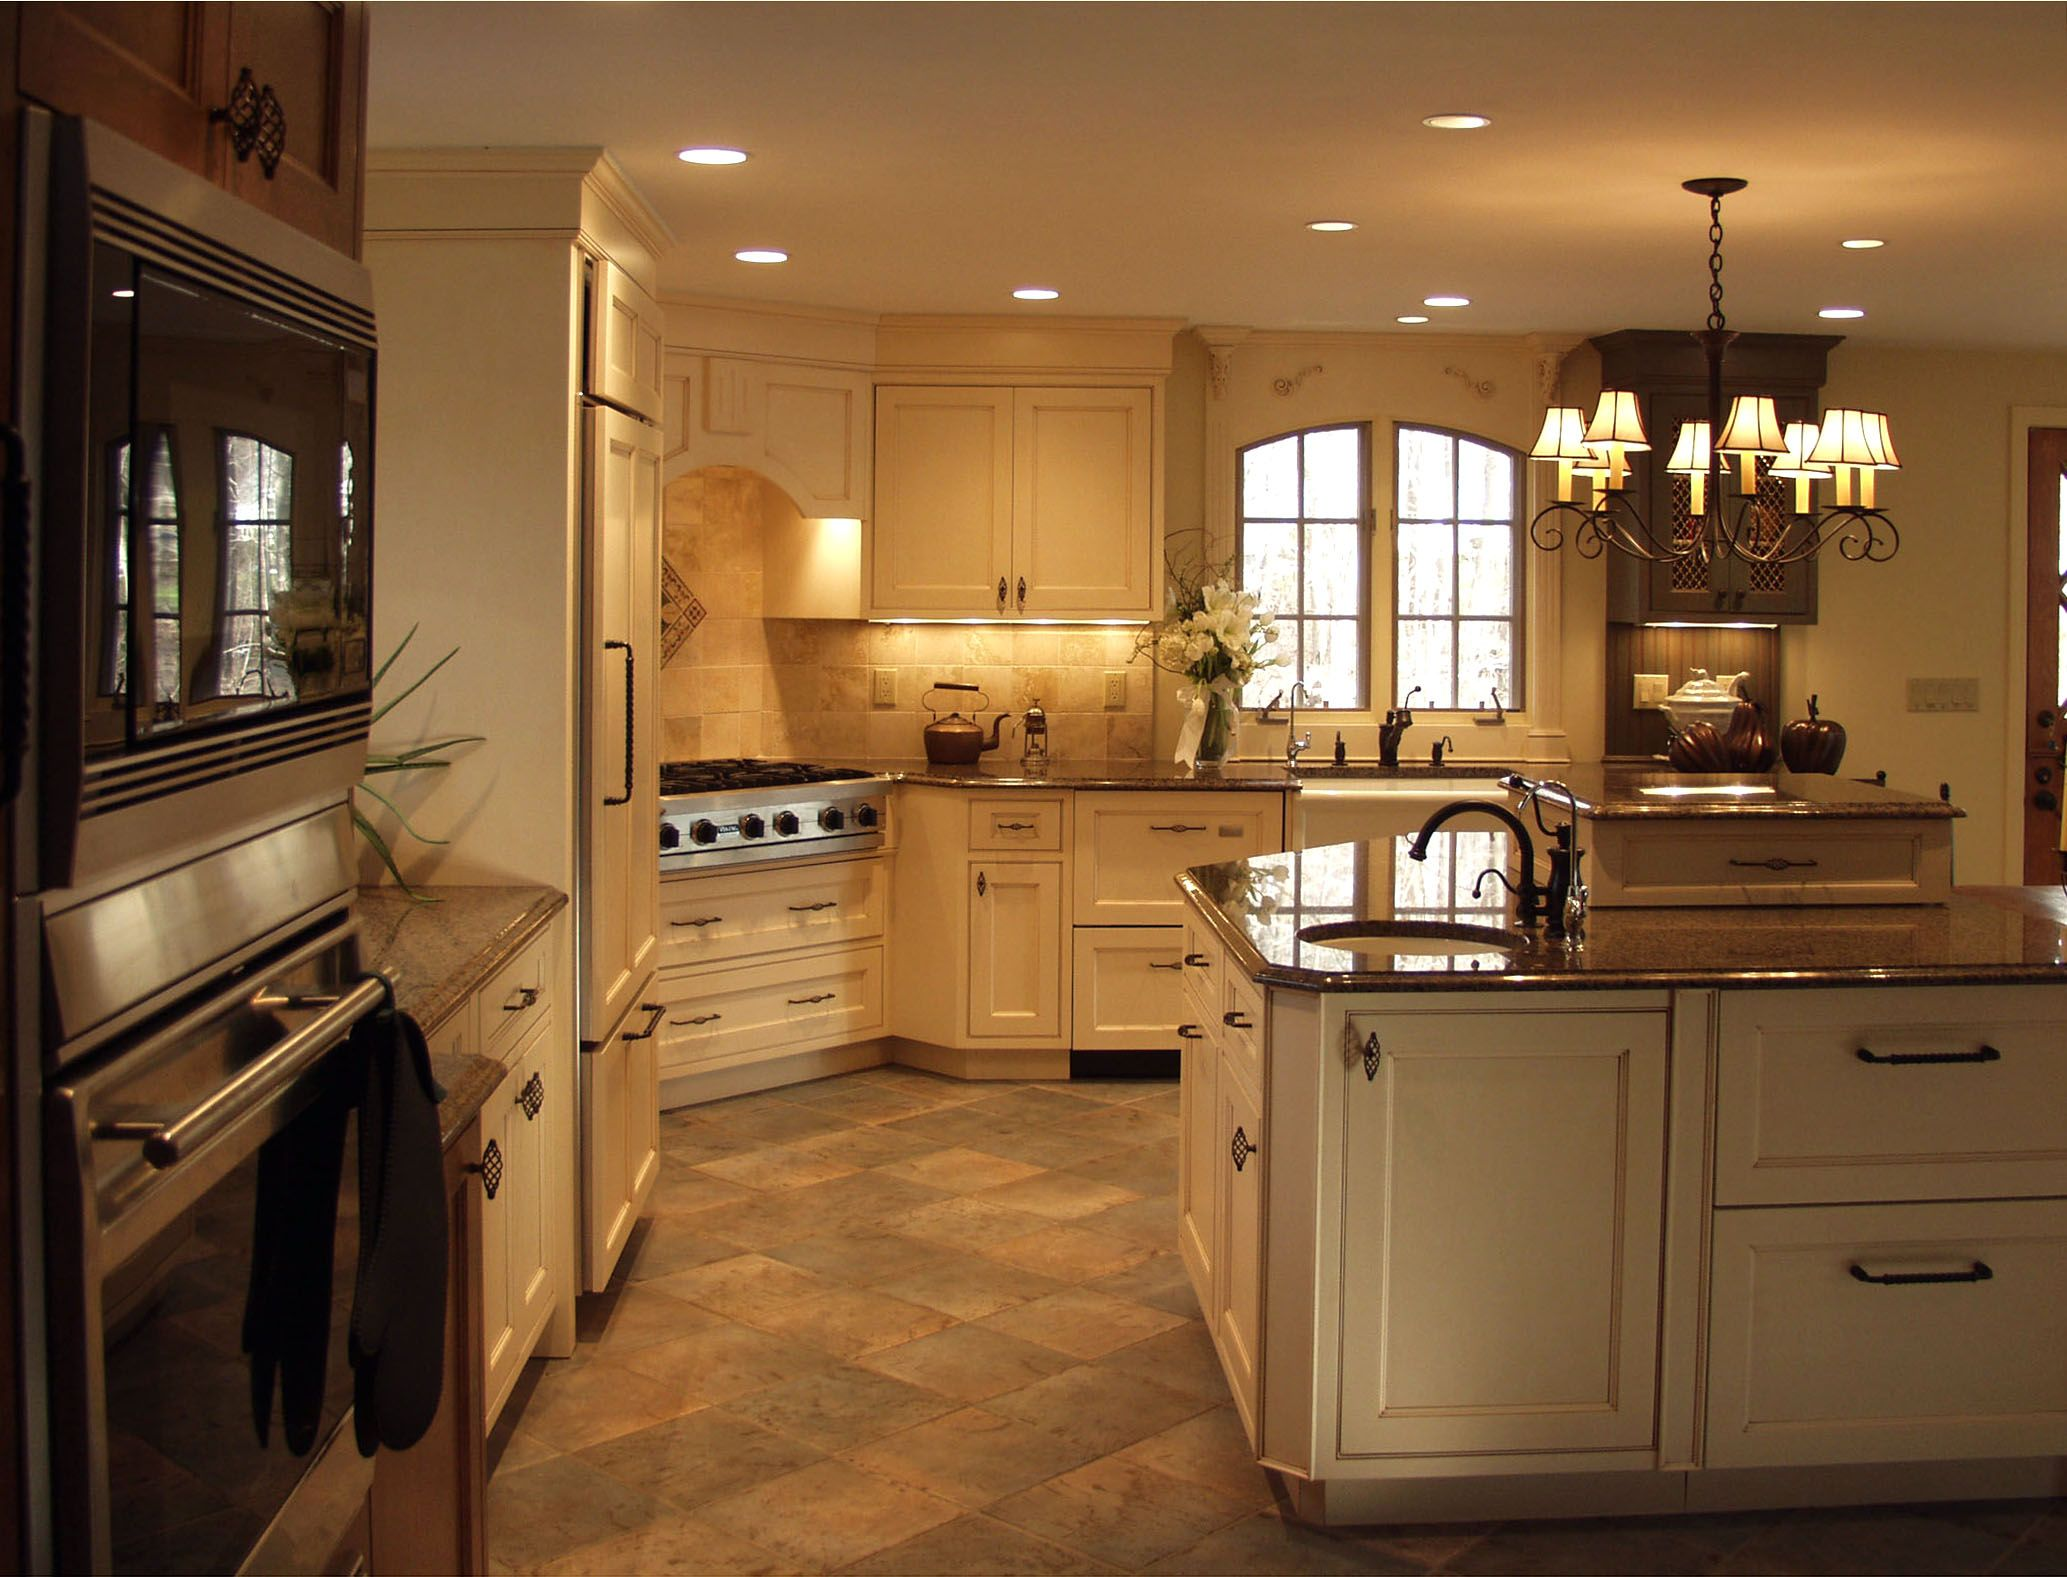 Custom Wood Products Rustichomes Cabinets Rustic House Kitchen Custom Cabinetry